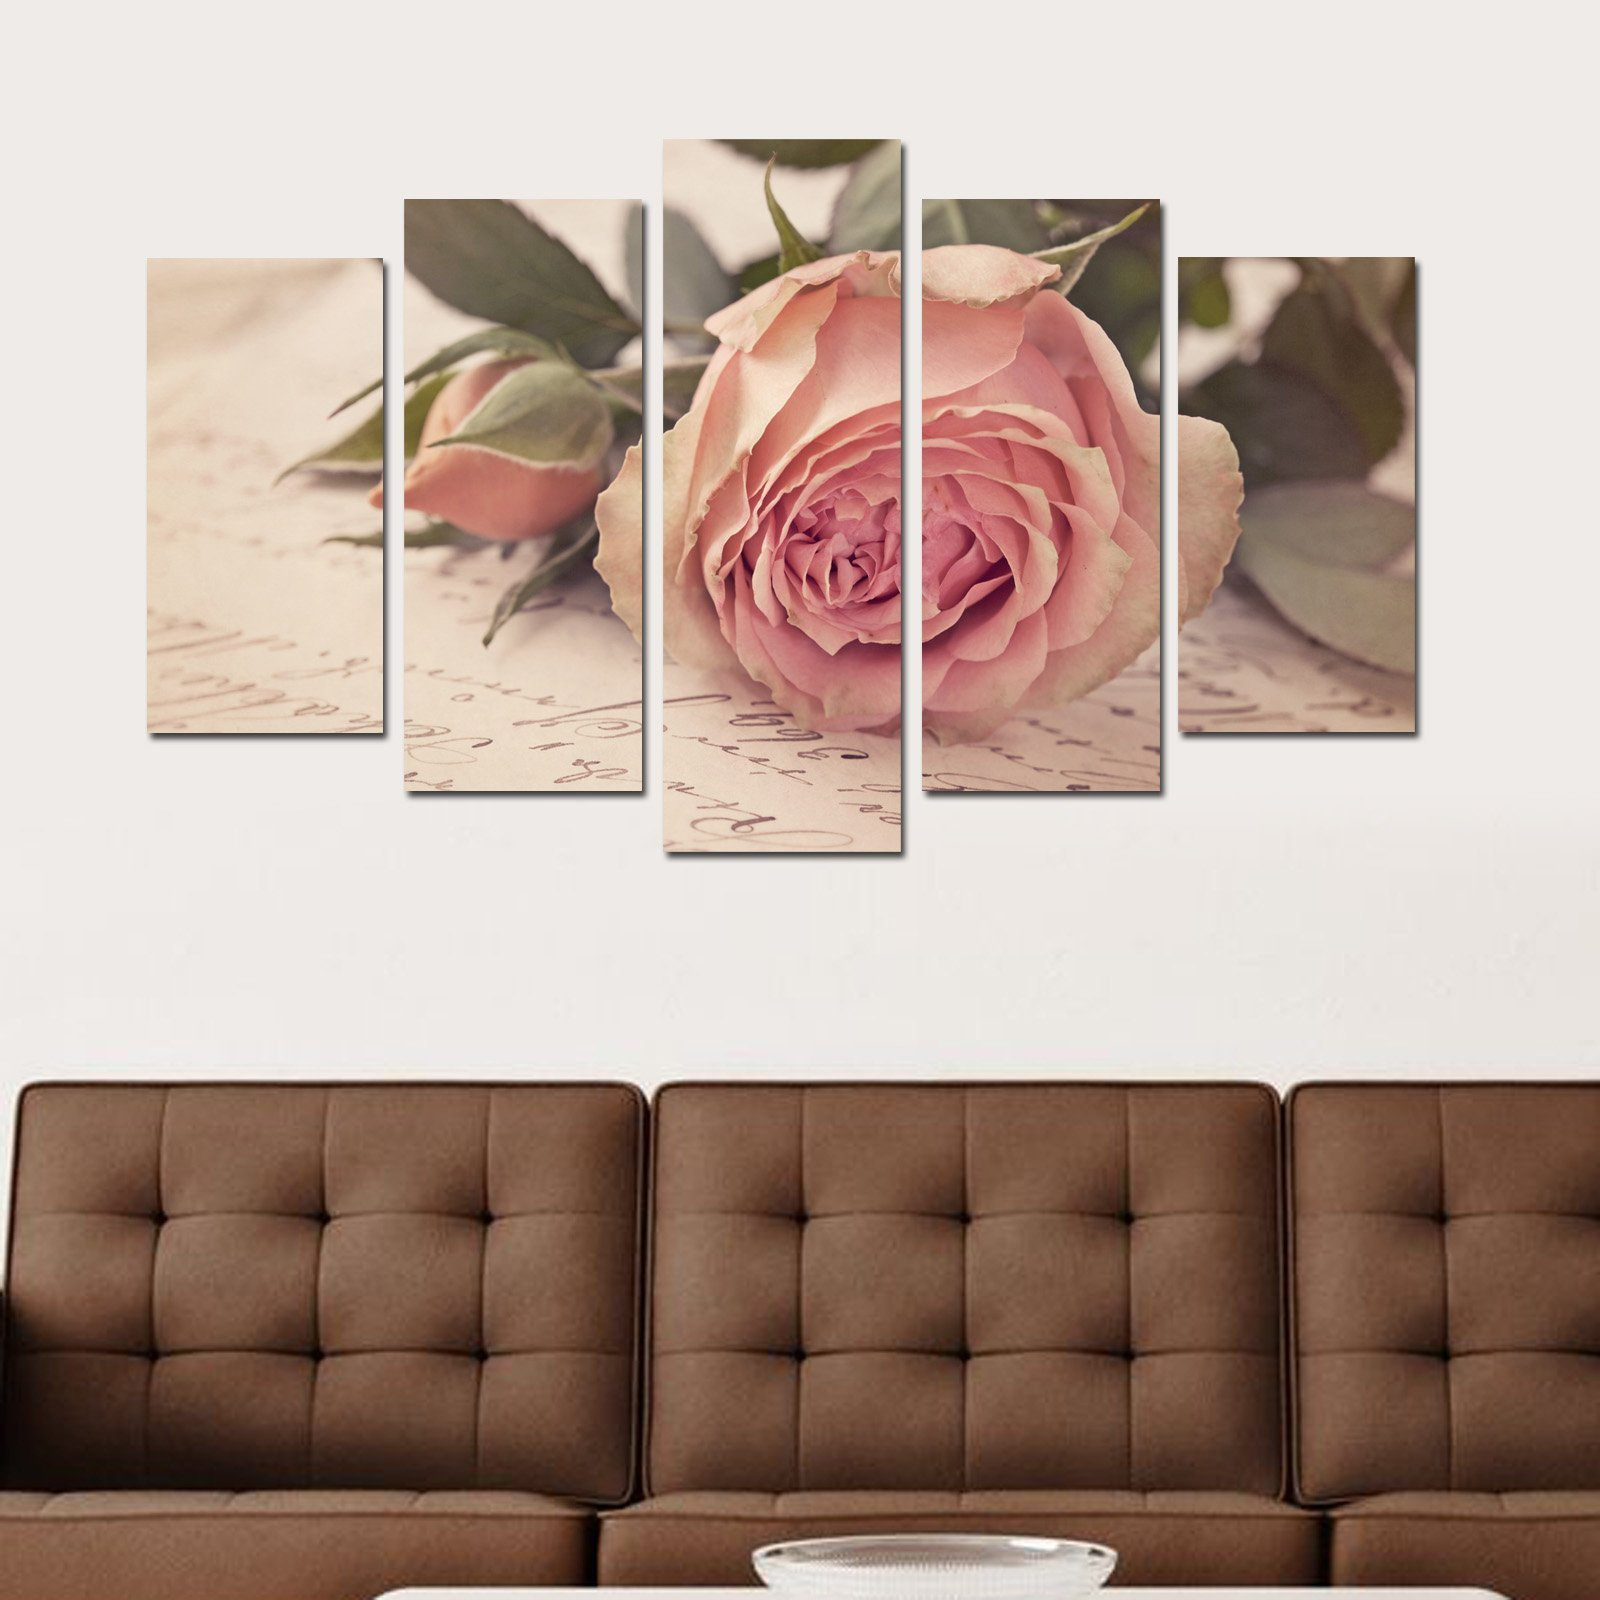 Decorative 100% MDF Wall Art 5 Panels (43'' x 24'' Total) Ready to Hang Painting Rose Pink Letter Love Writing Word Leaf Bud Herb